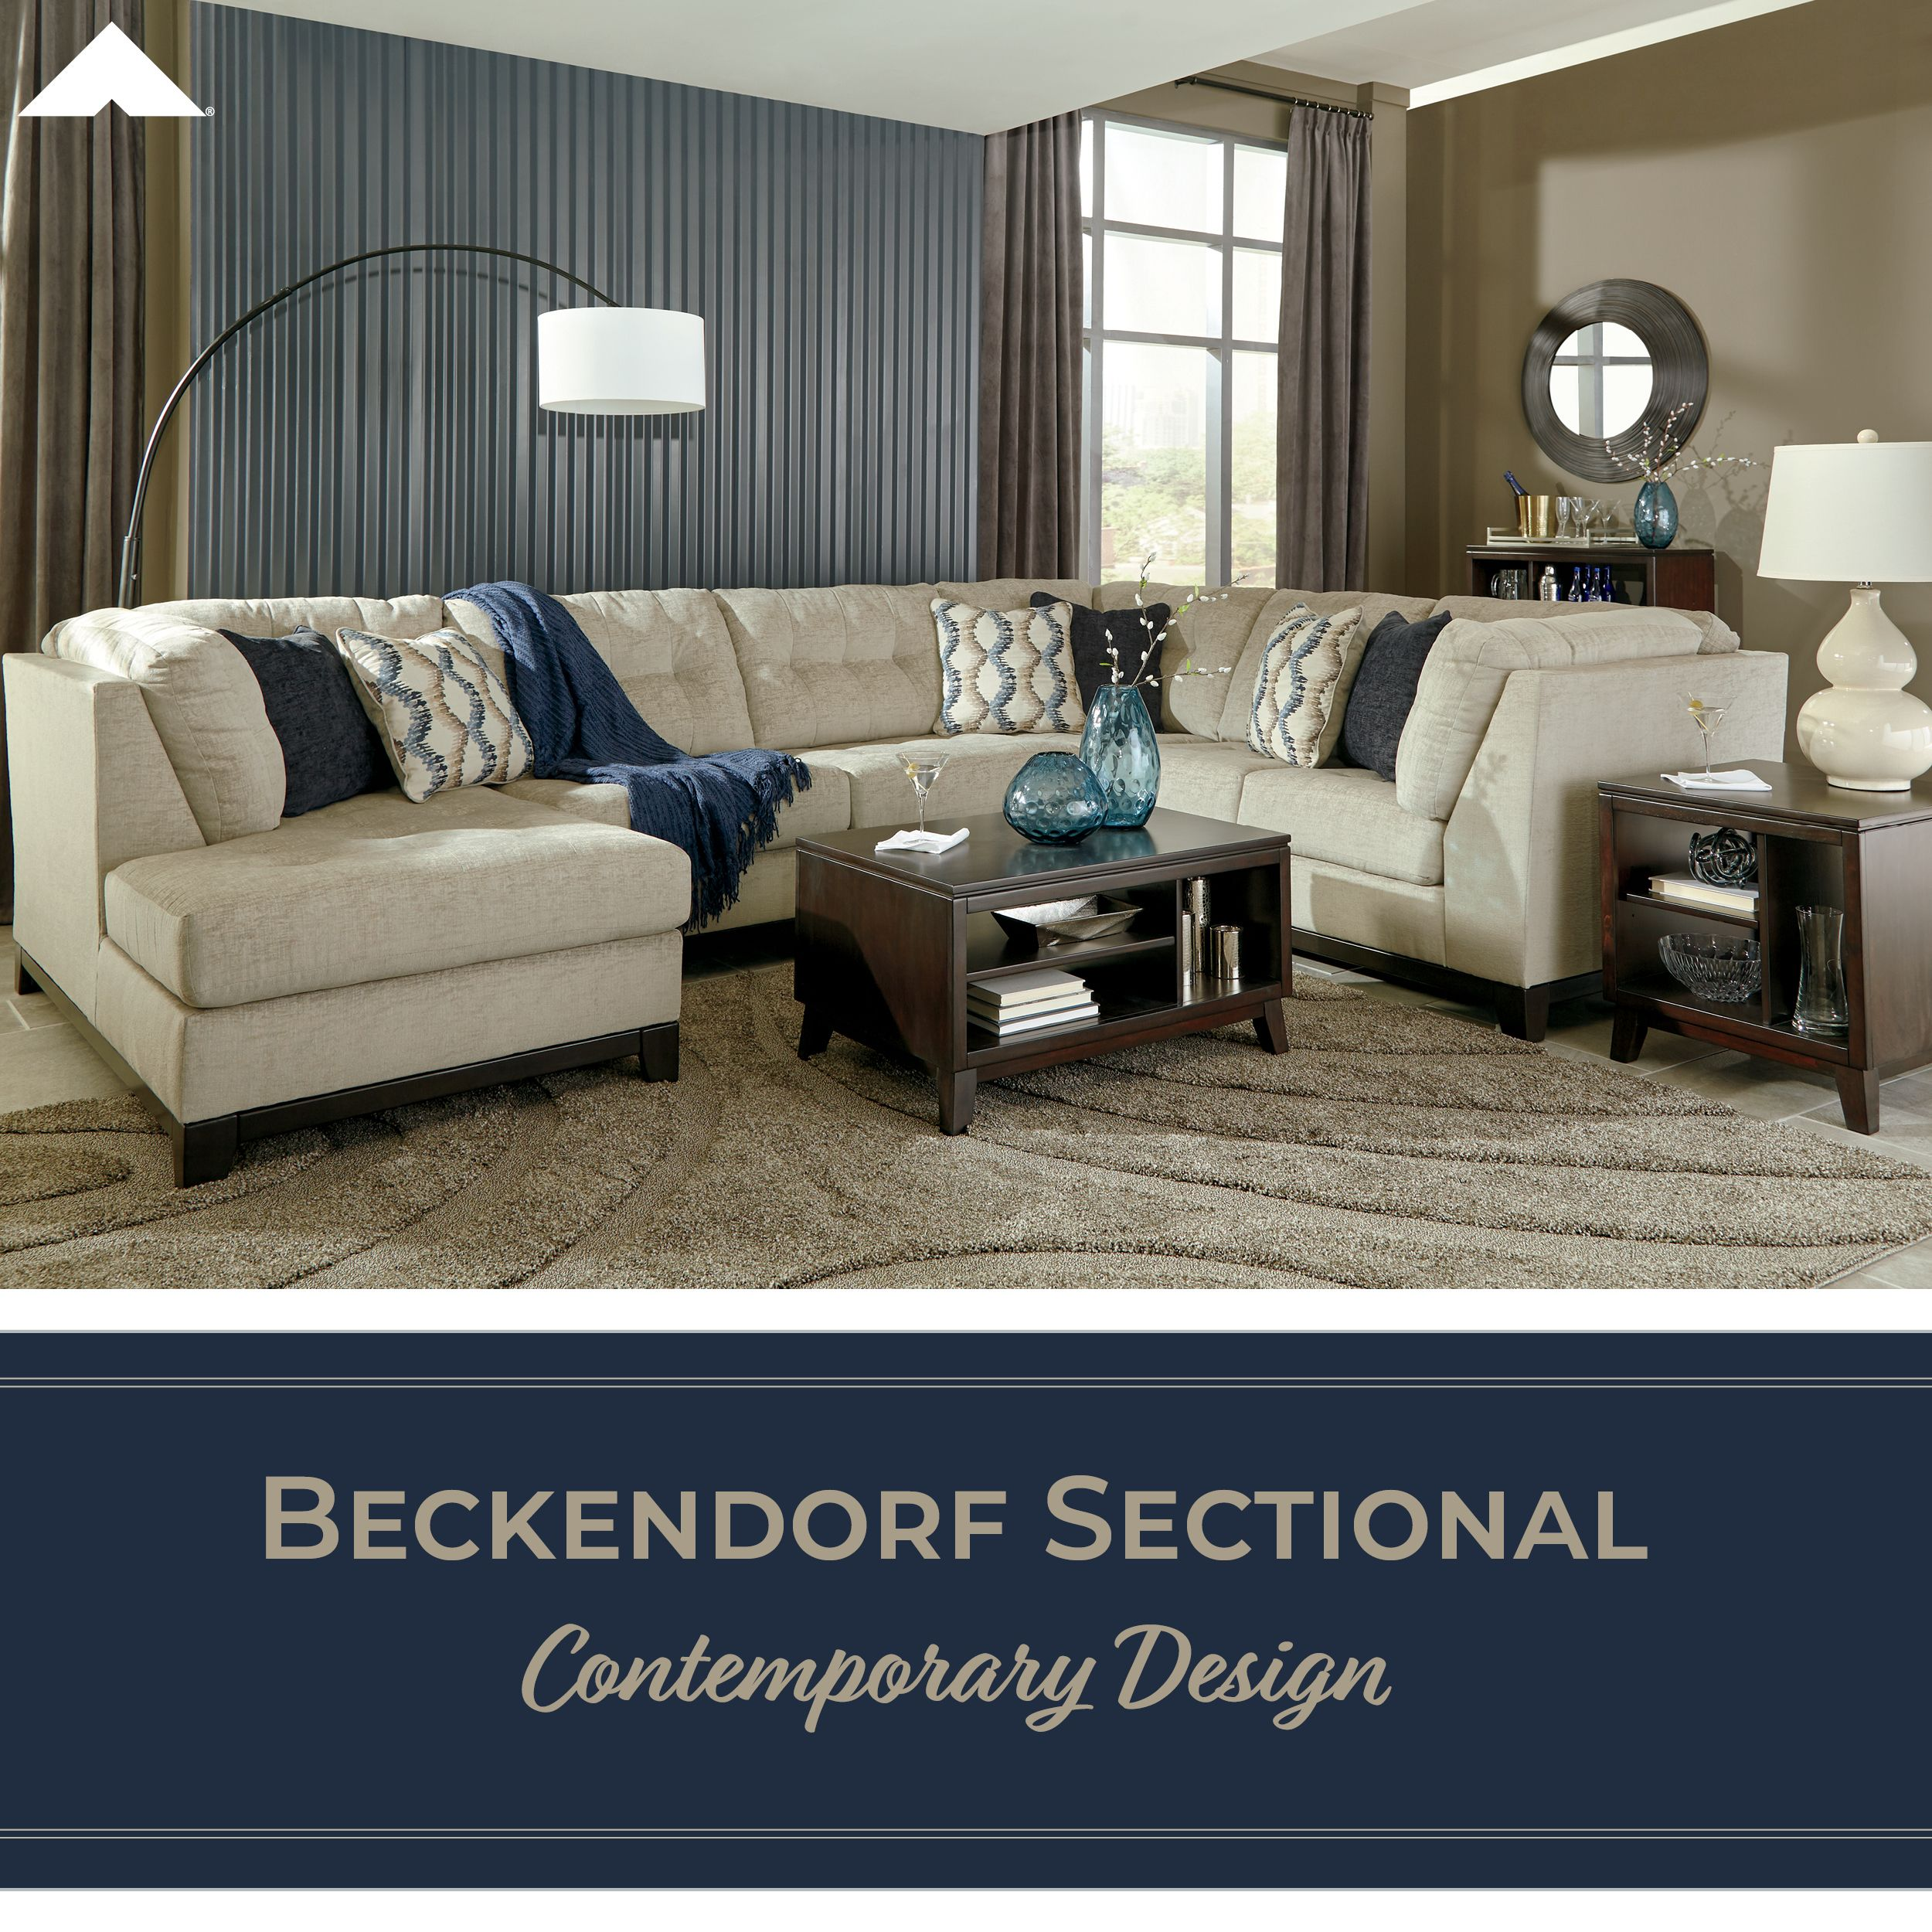 Beckendorf Contemporary Design Sectional By Ashley Furniture